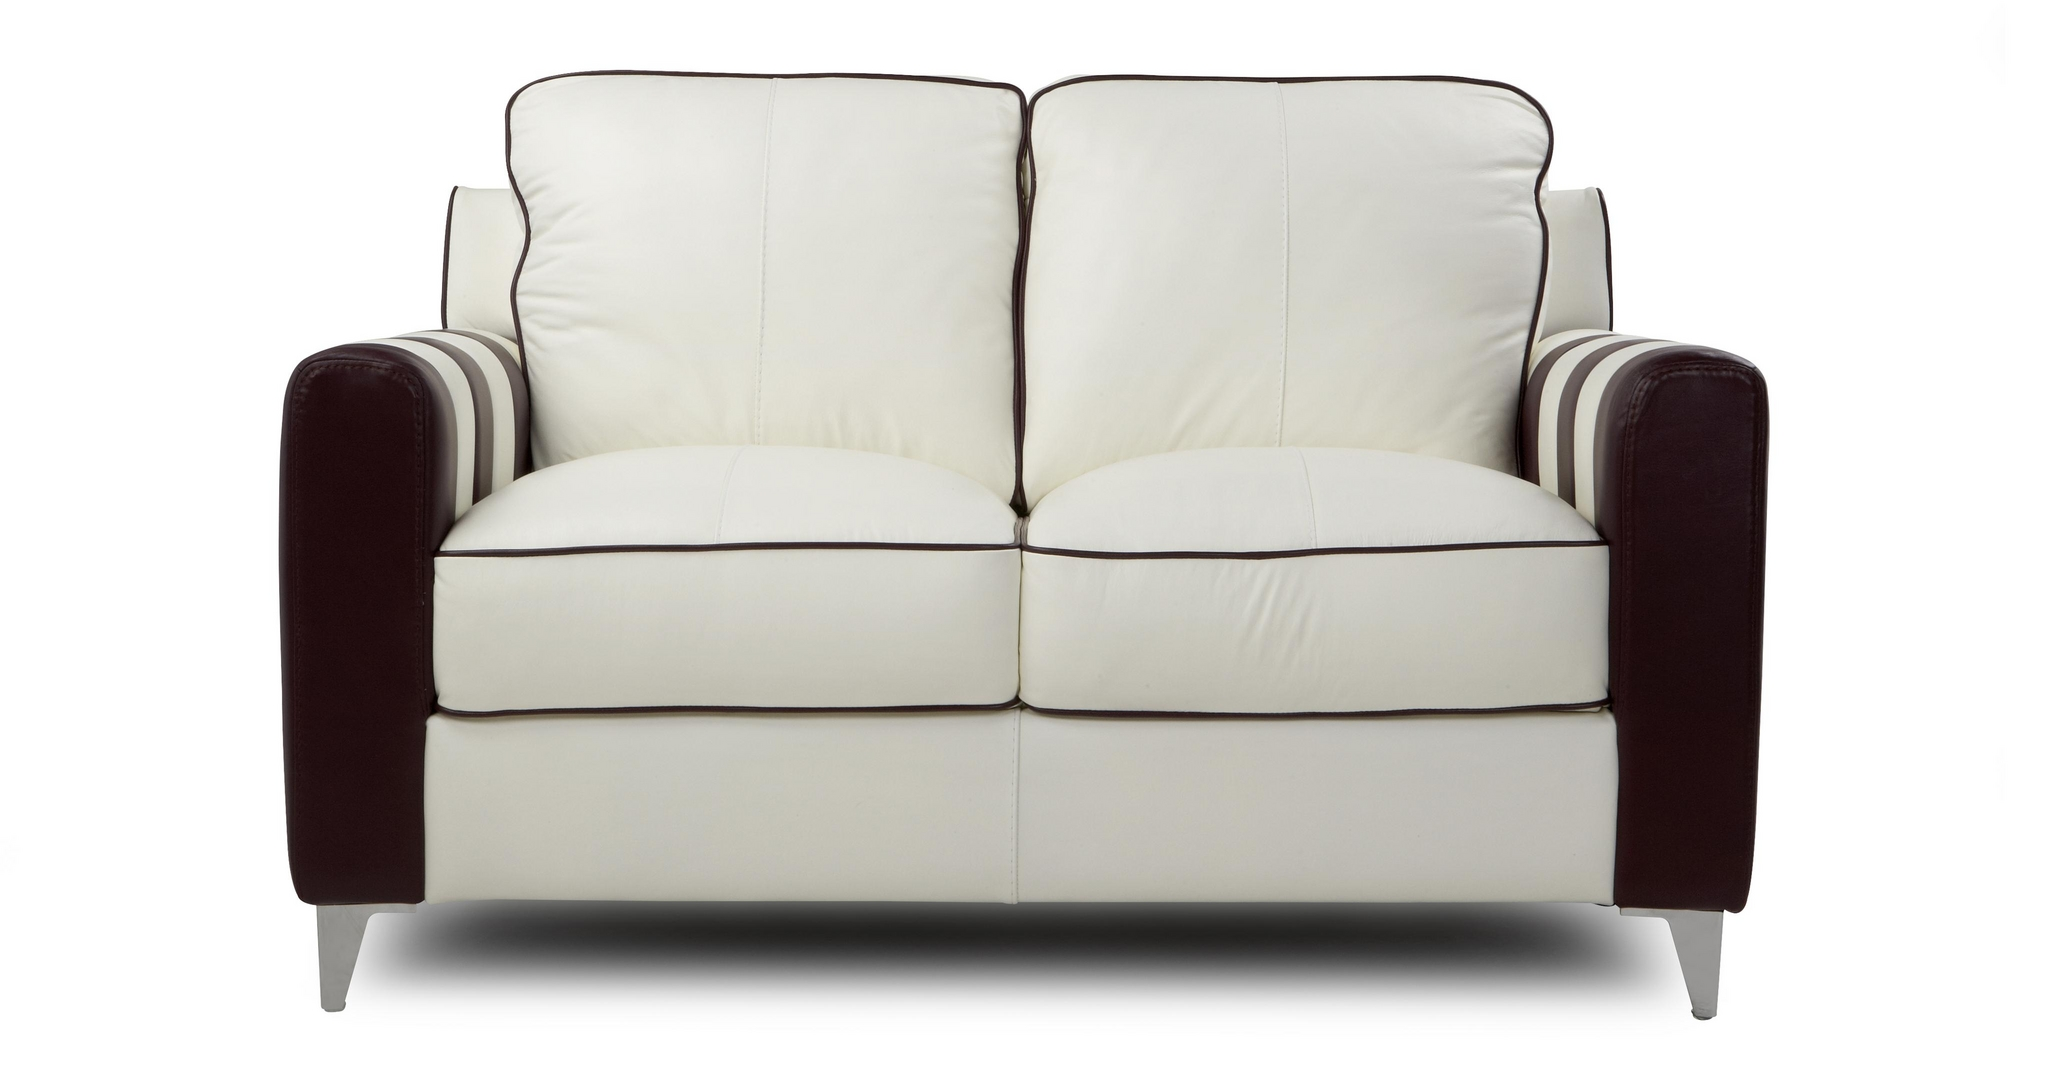 Dfs Wham Aspen White And Purple Leather Suite 2 Seater